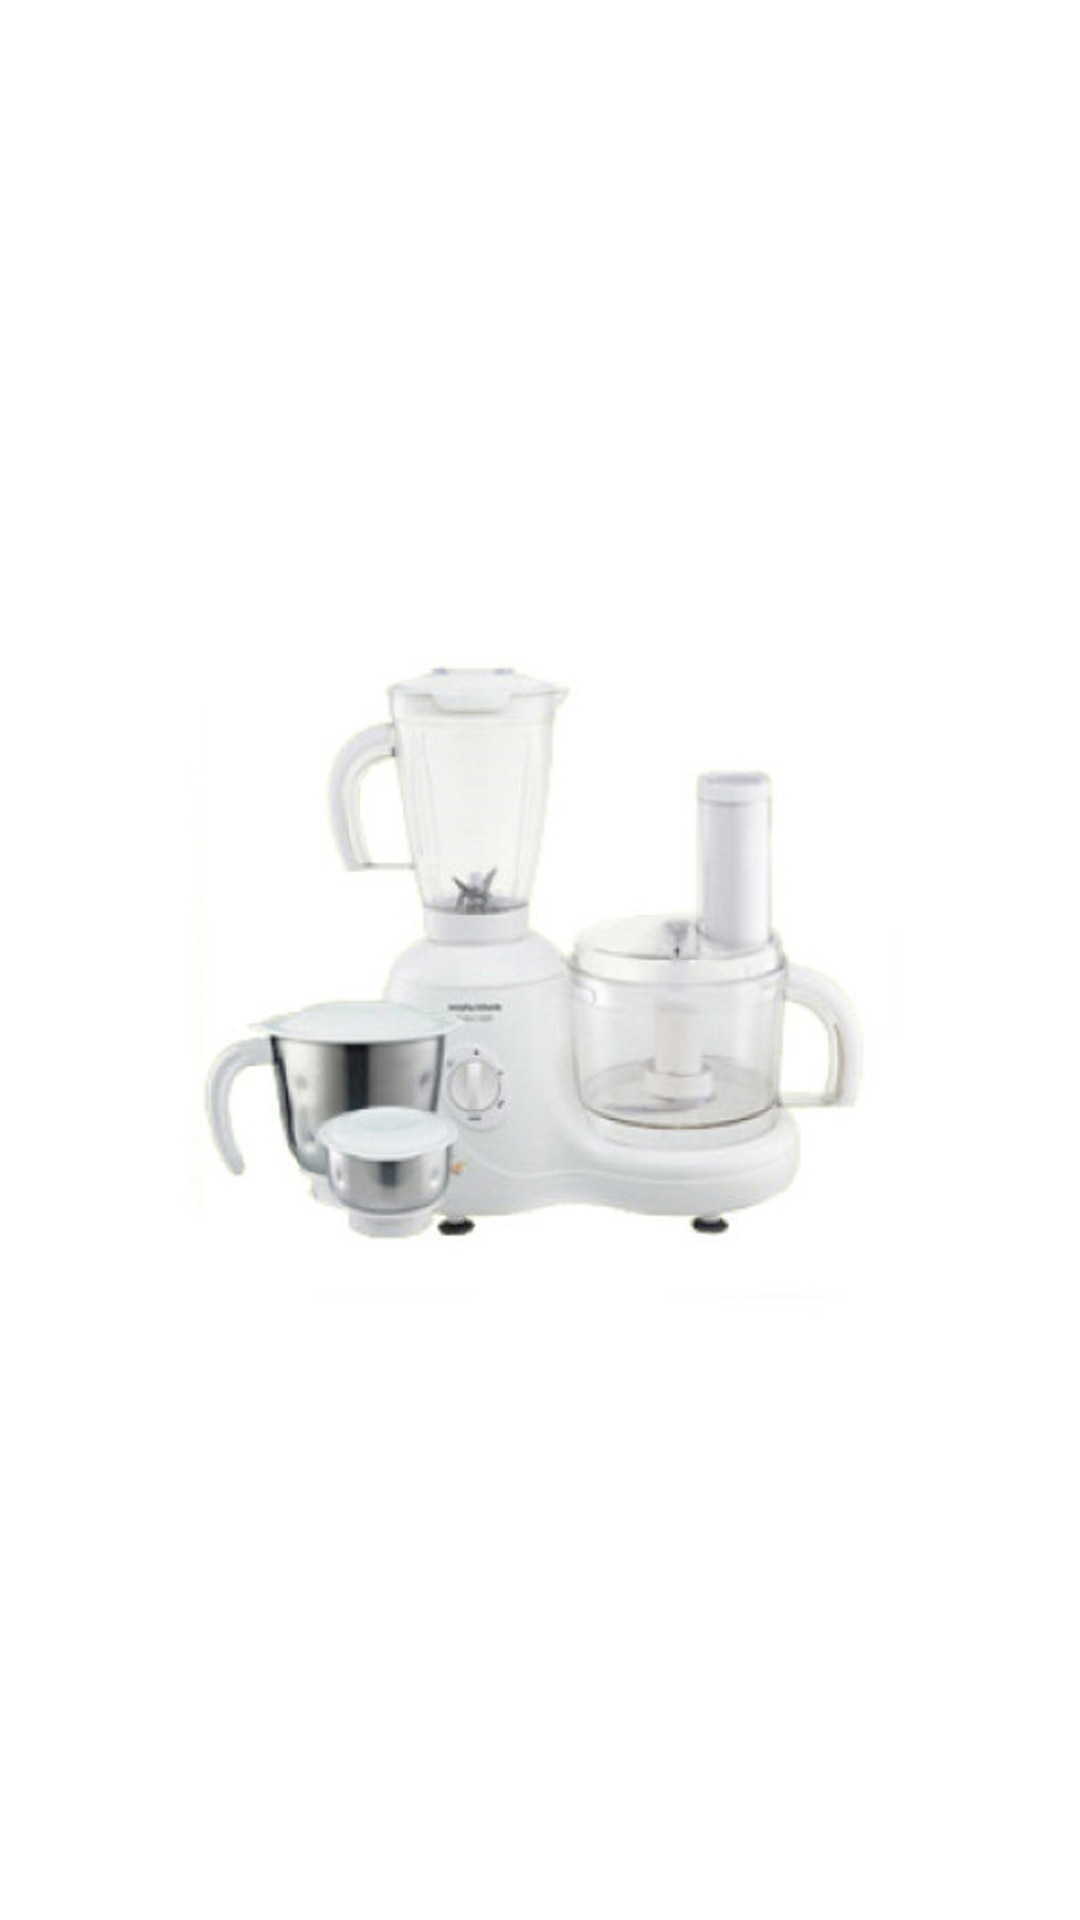 Morphy Richards Select-600 600 W Food Processor (White)